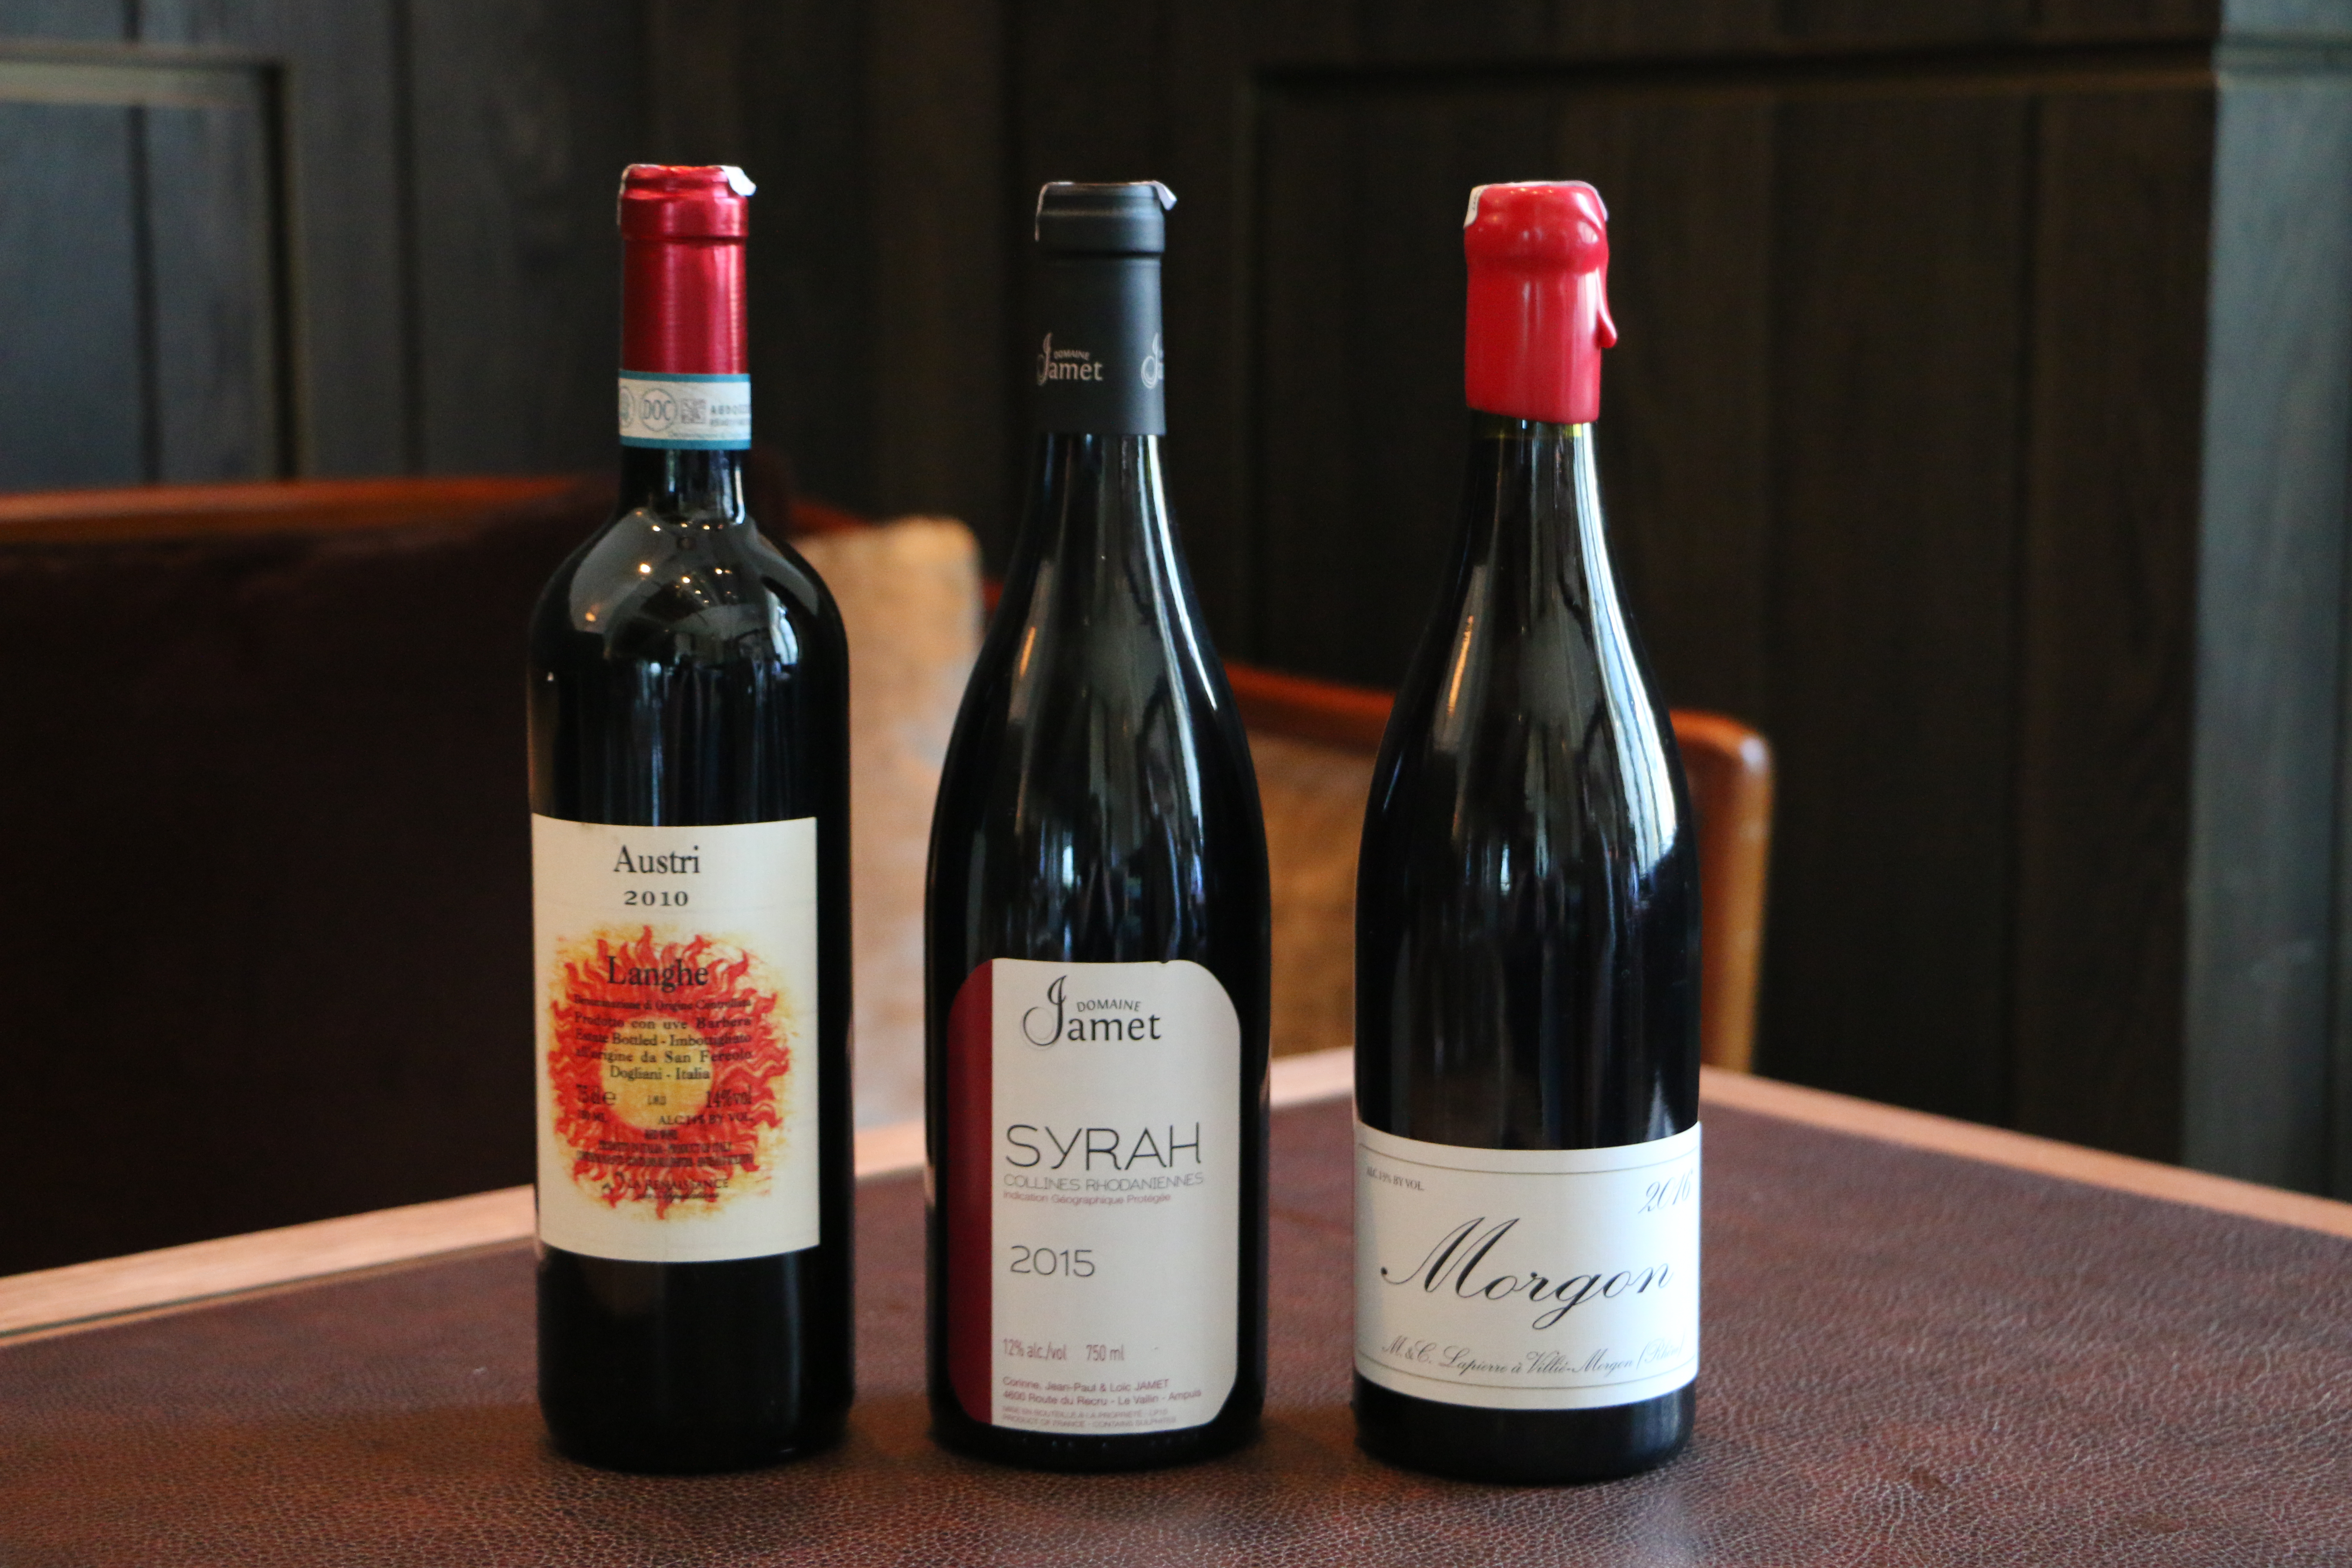 Three bottles of red wineCouvreux